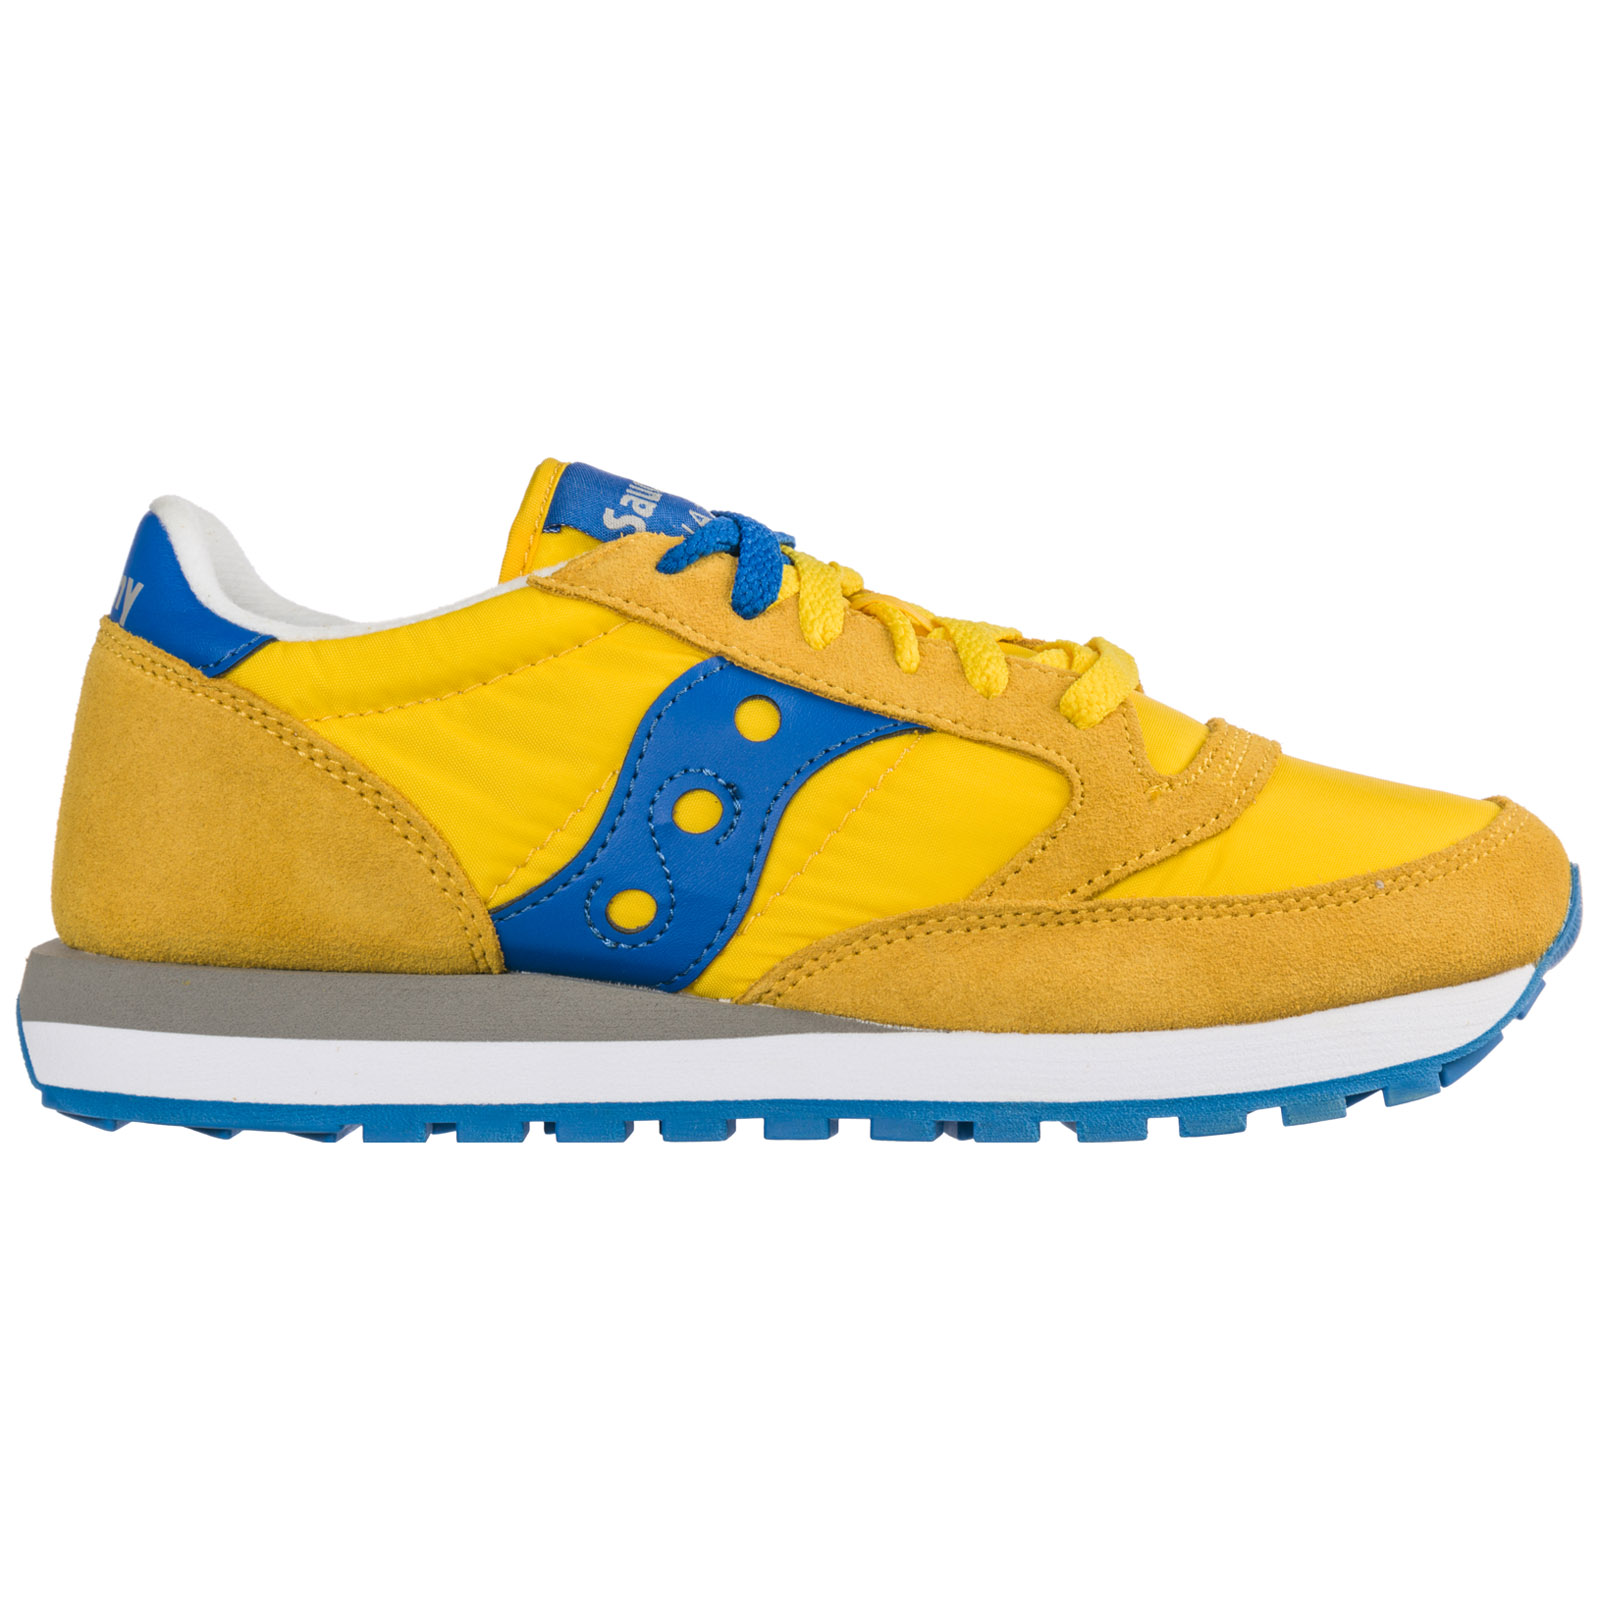 Saucony Men's Shoes Suede Trainers Sneakers Jazz In Giallo